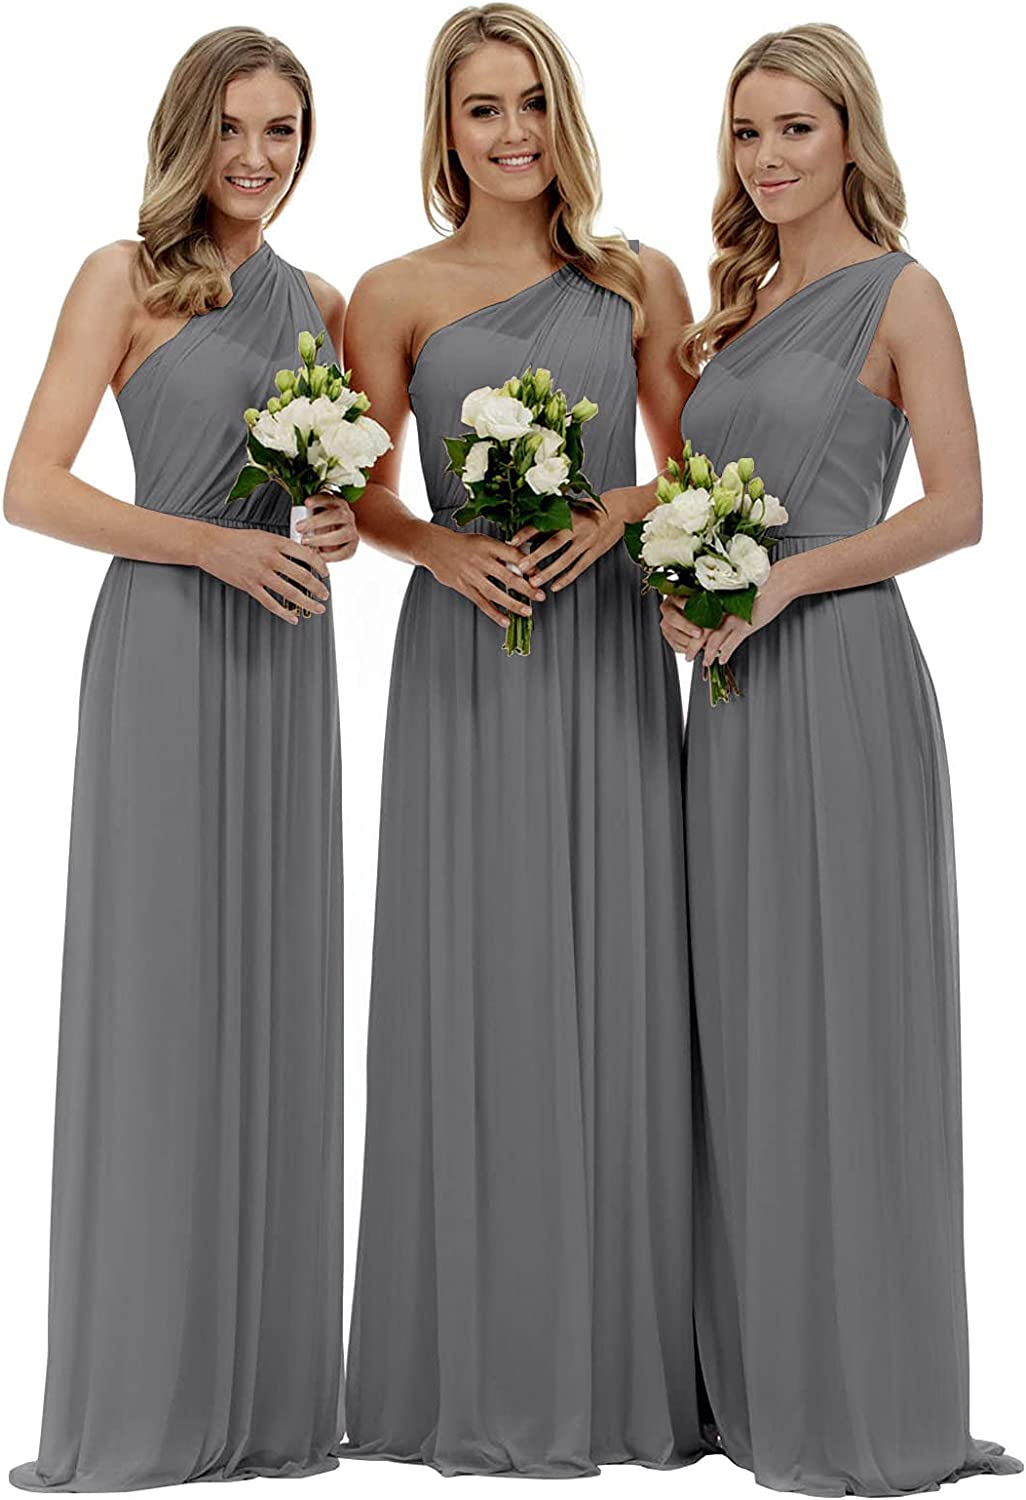 Vnaix Women's A-line Chiffon One Sales of SALE items from new works Dress Long Latest item Shoulder Bridesmaid